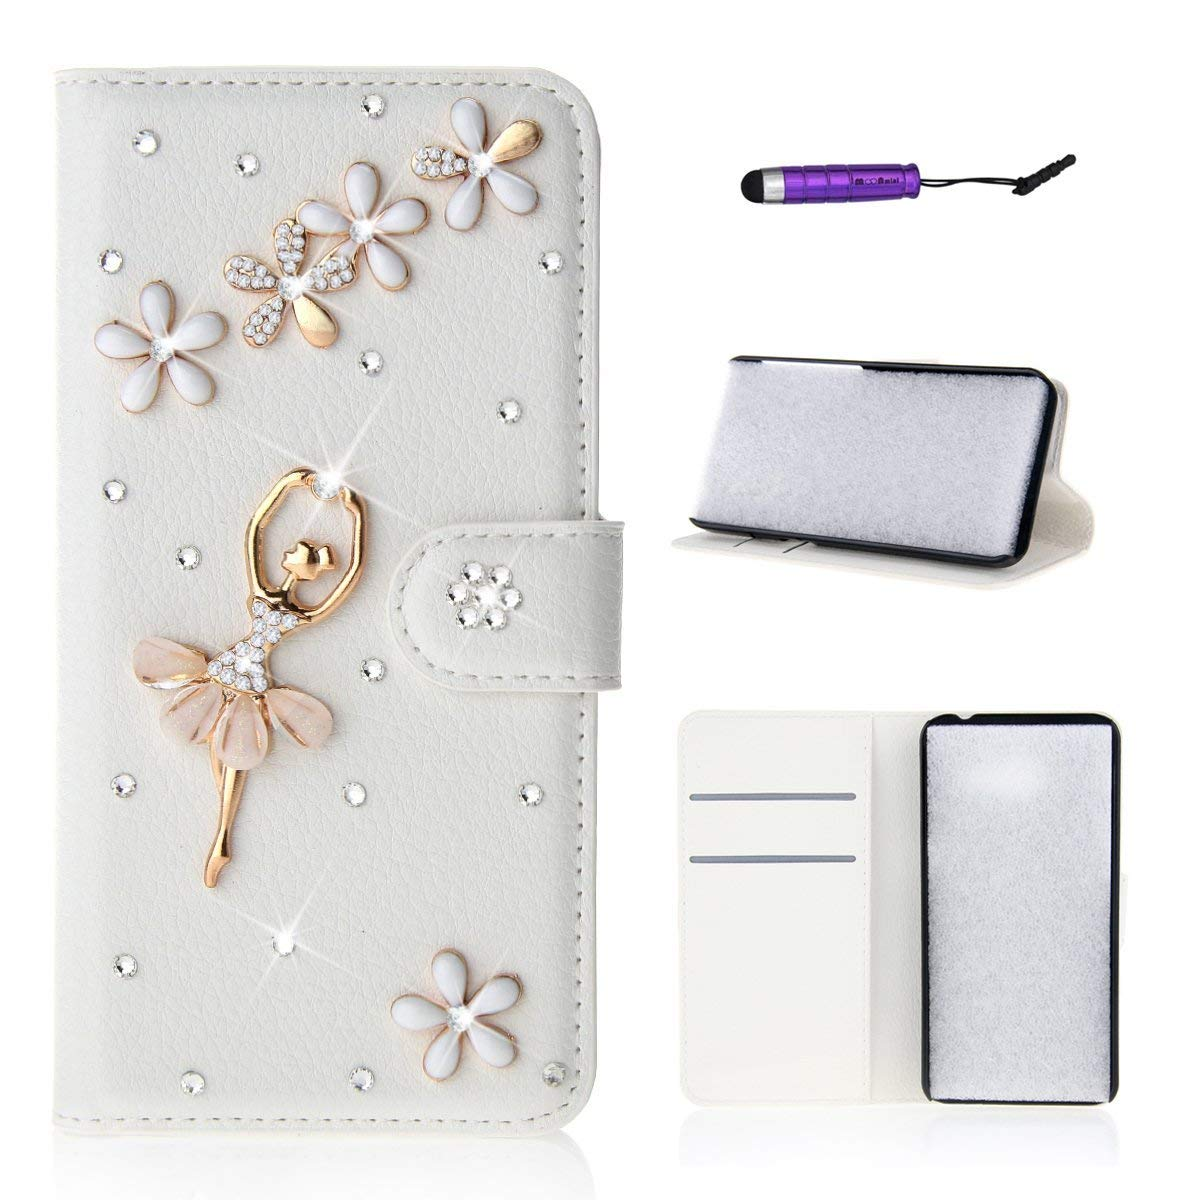 ZTE Blade A310 Case,Excellence Flip Premium PU Leather Wallet Case Flip with Kickstand and Credit Card Slot Cash Holder Flip Cover for ZTE Blade A310 ZTE Blade A310 / A462